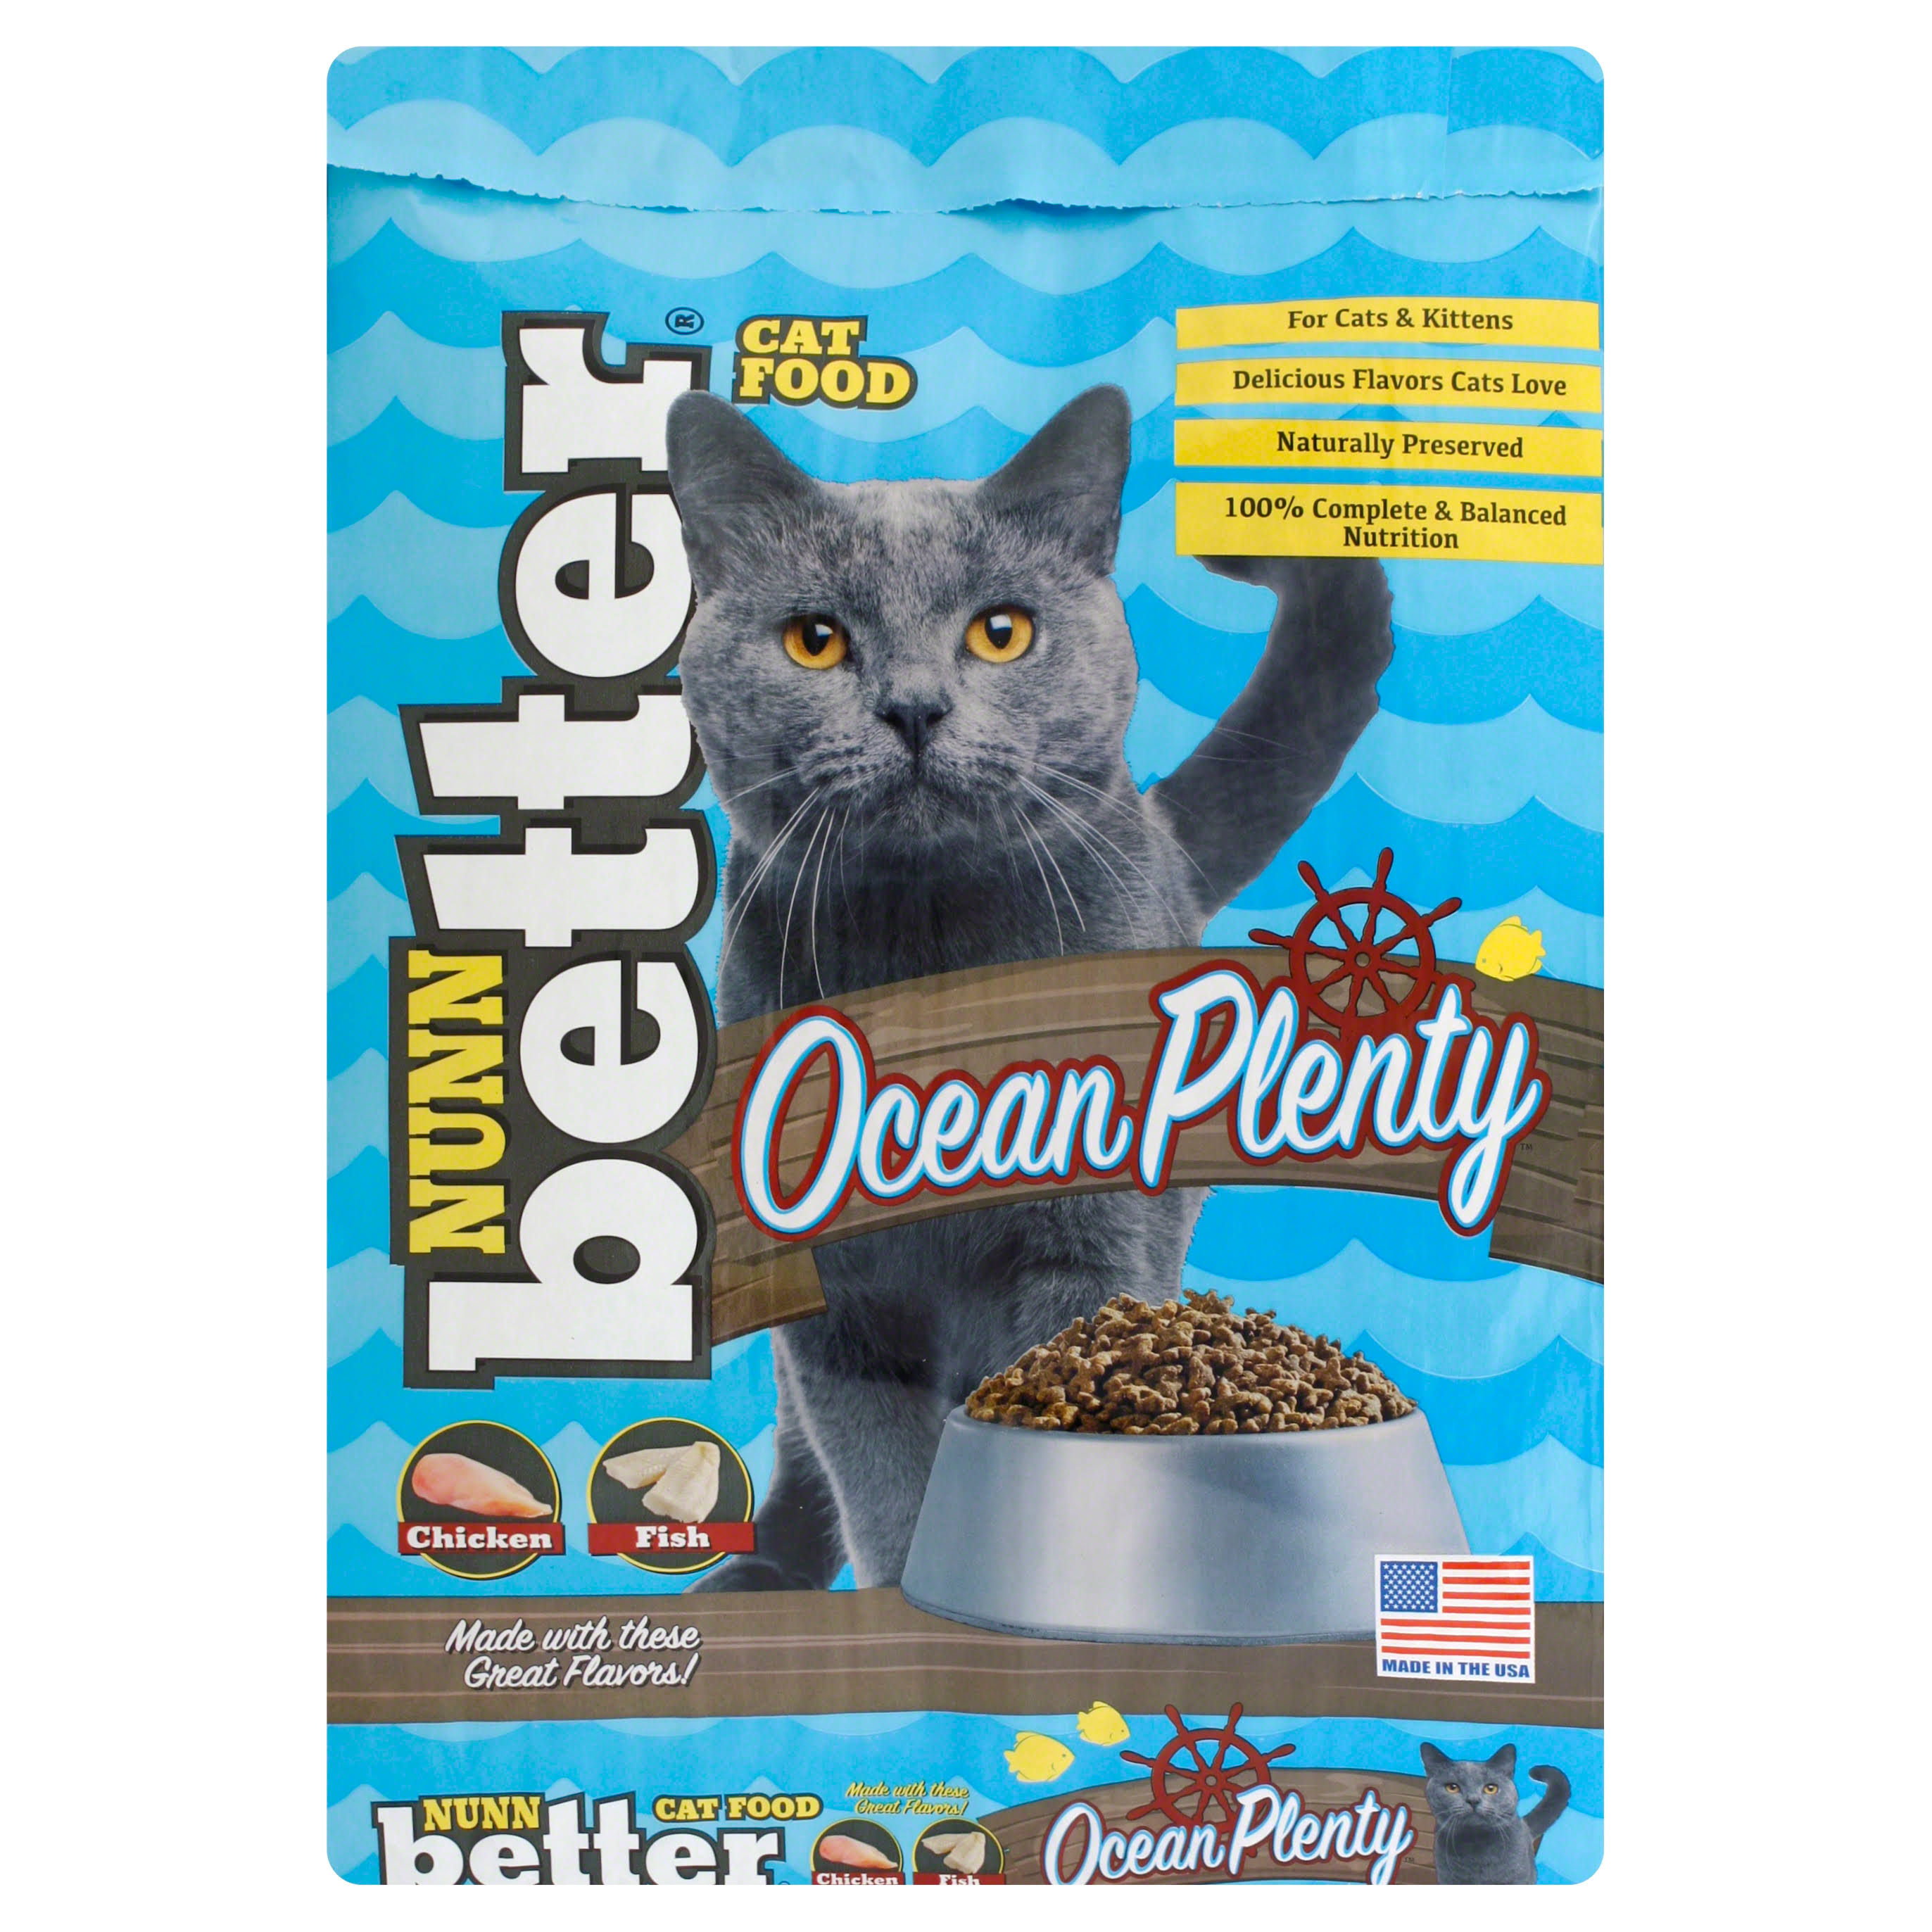 Nunn Better Cat Food, Ocean Plenty - 13 lb